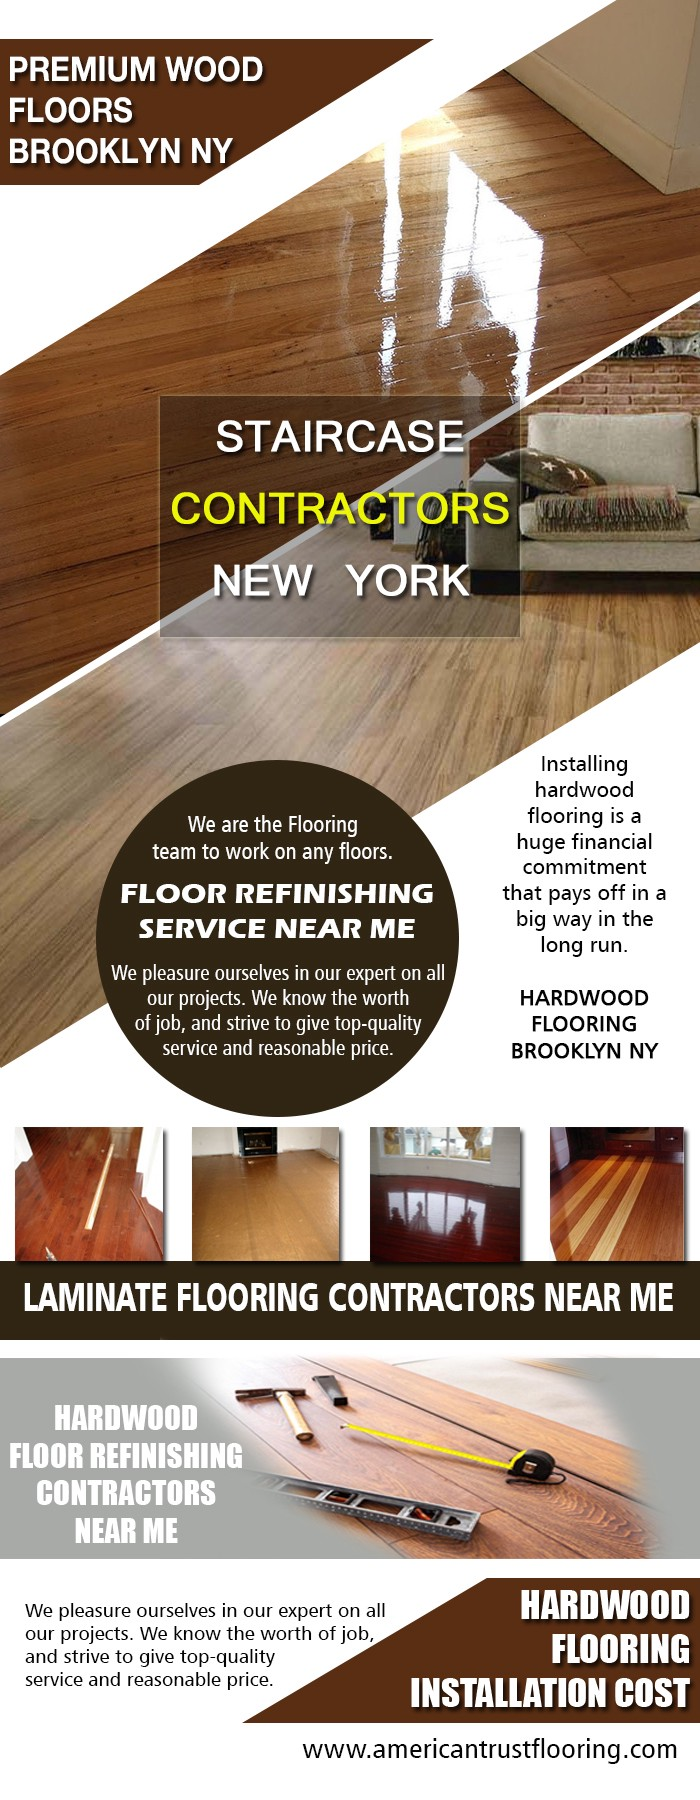 hardwood flooring brooklyn marbod hardwood after that you have to bring in the experts and also let them do job very least end up with poorly set hardwood floor hardwood floor refinishers near me childrens pediatric medium